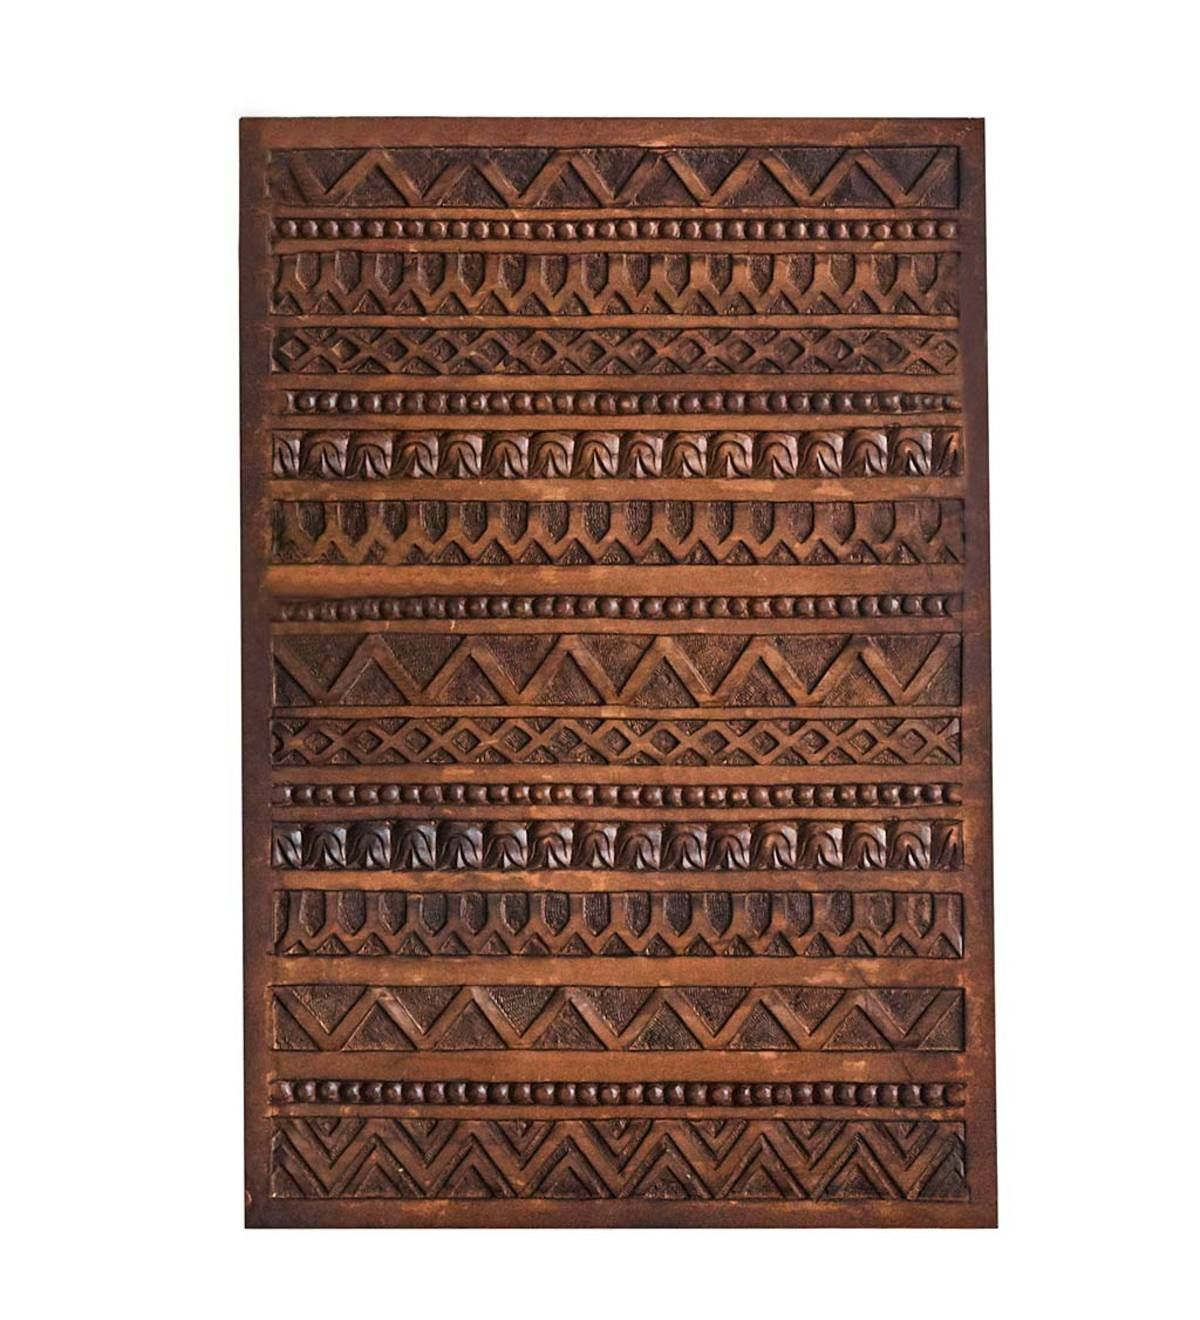 Hand Carved From Mango Wood In India This Bernini Wood Wall Hanging Is A Sculptural Work Of Art Intricate In D Carved Wood Wall Art Carved Wall Art Wood Wall